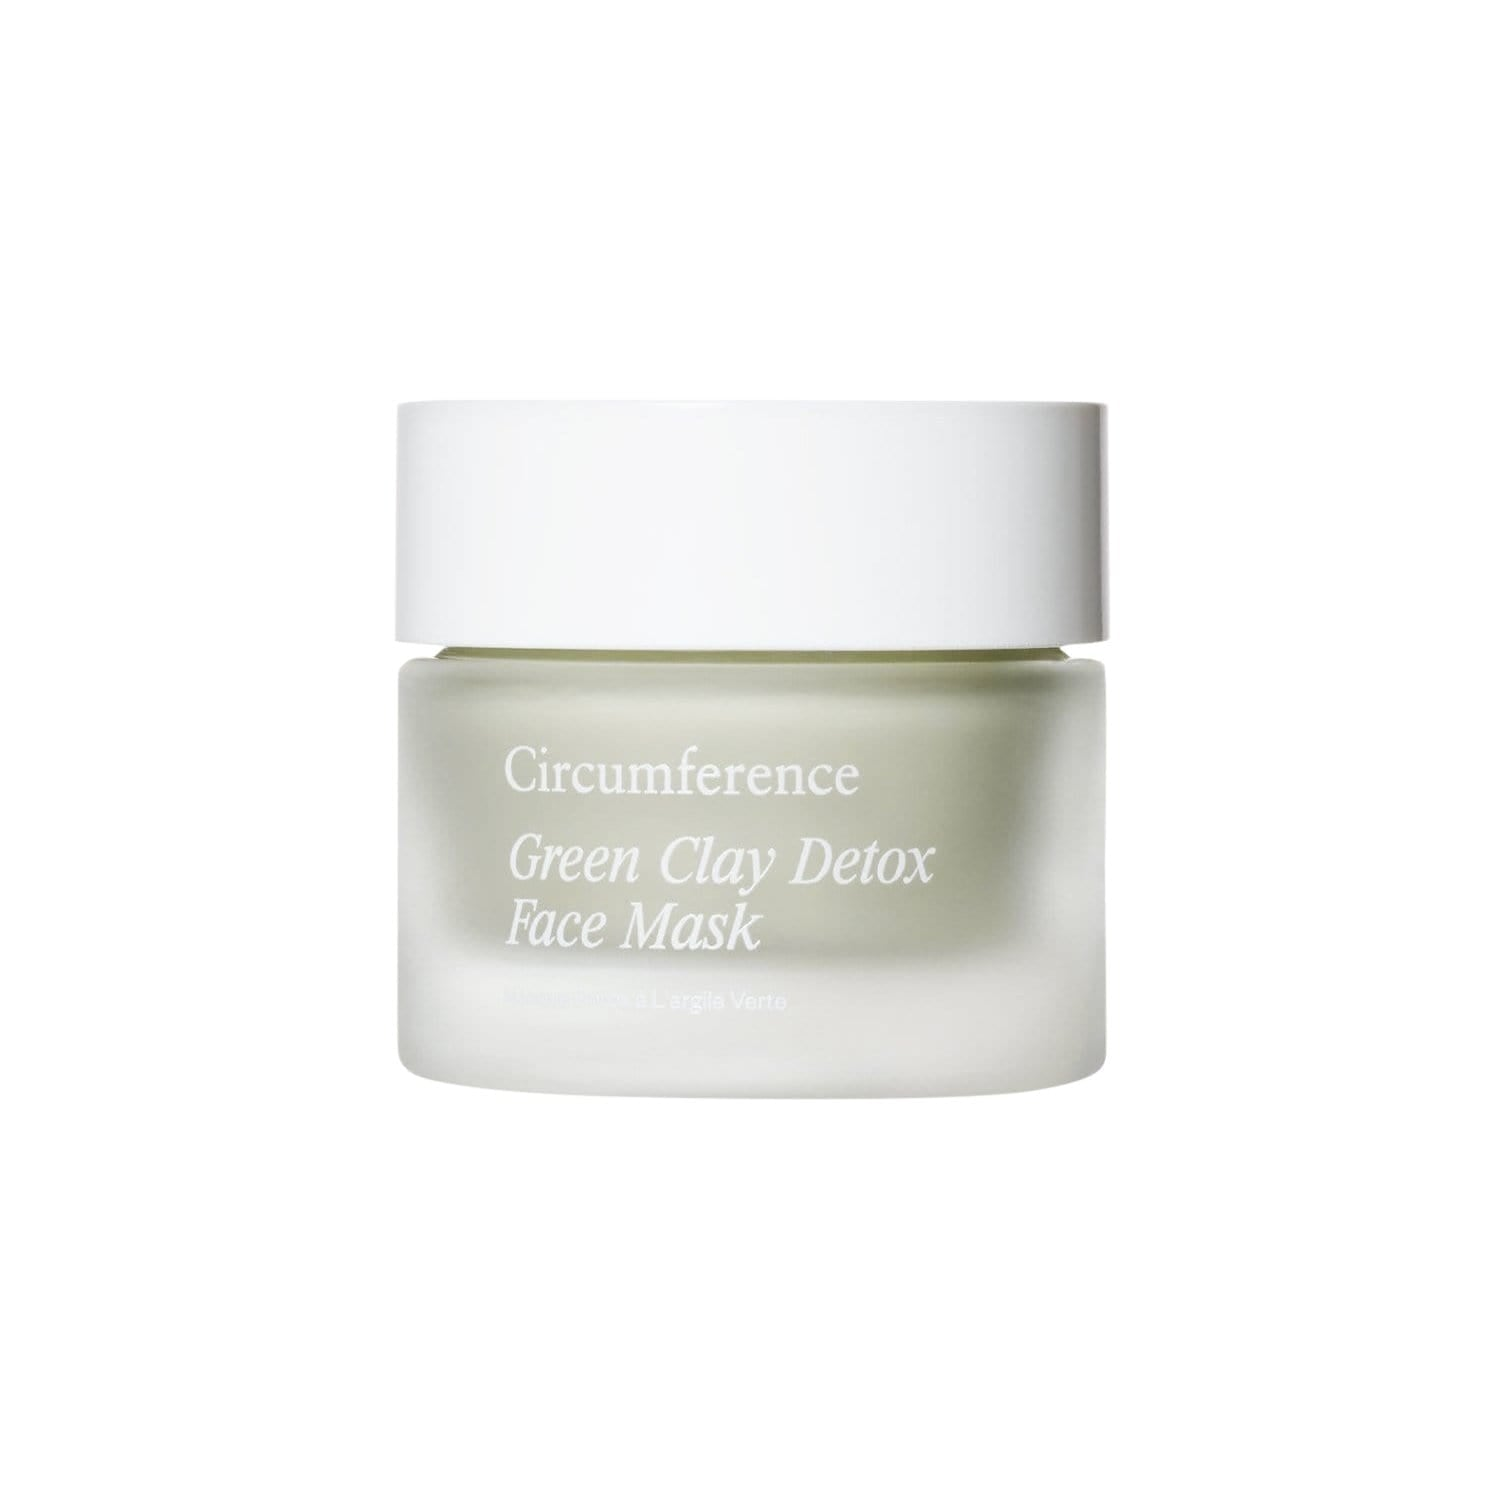 Circumference NYC 1.7 oz / 50 ml Green Clay Detox Face Mask